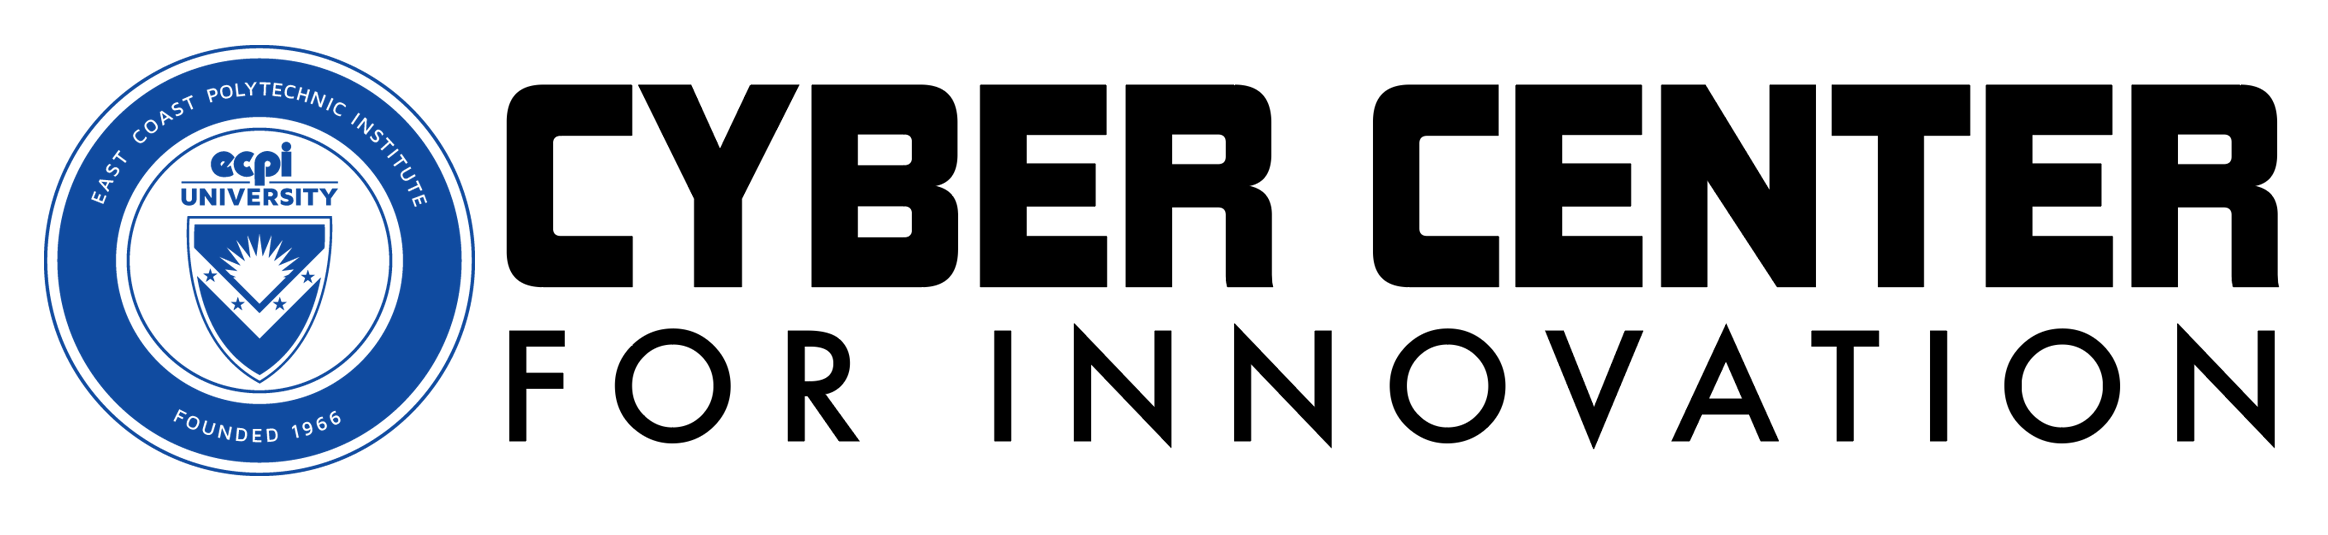 Cyber Security Center for Innovation